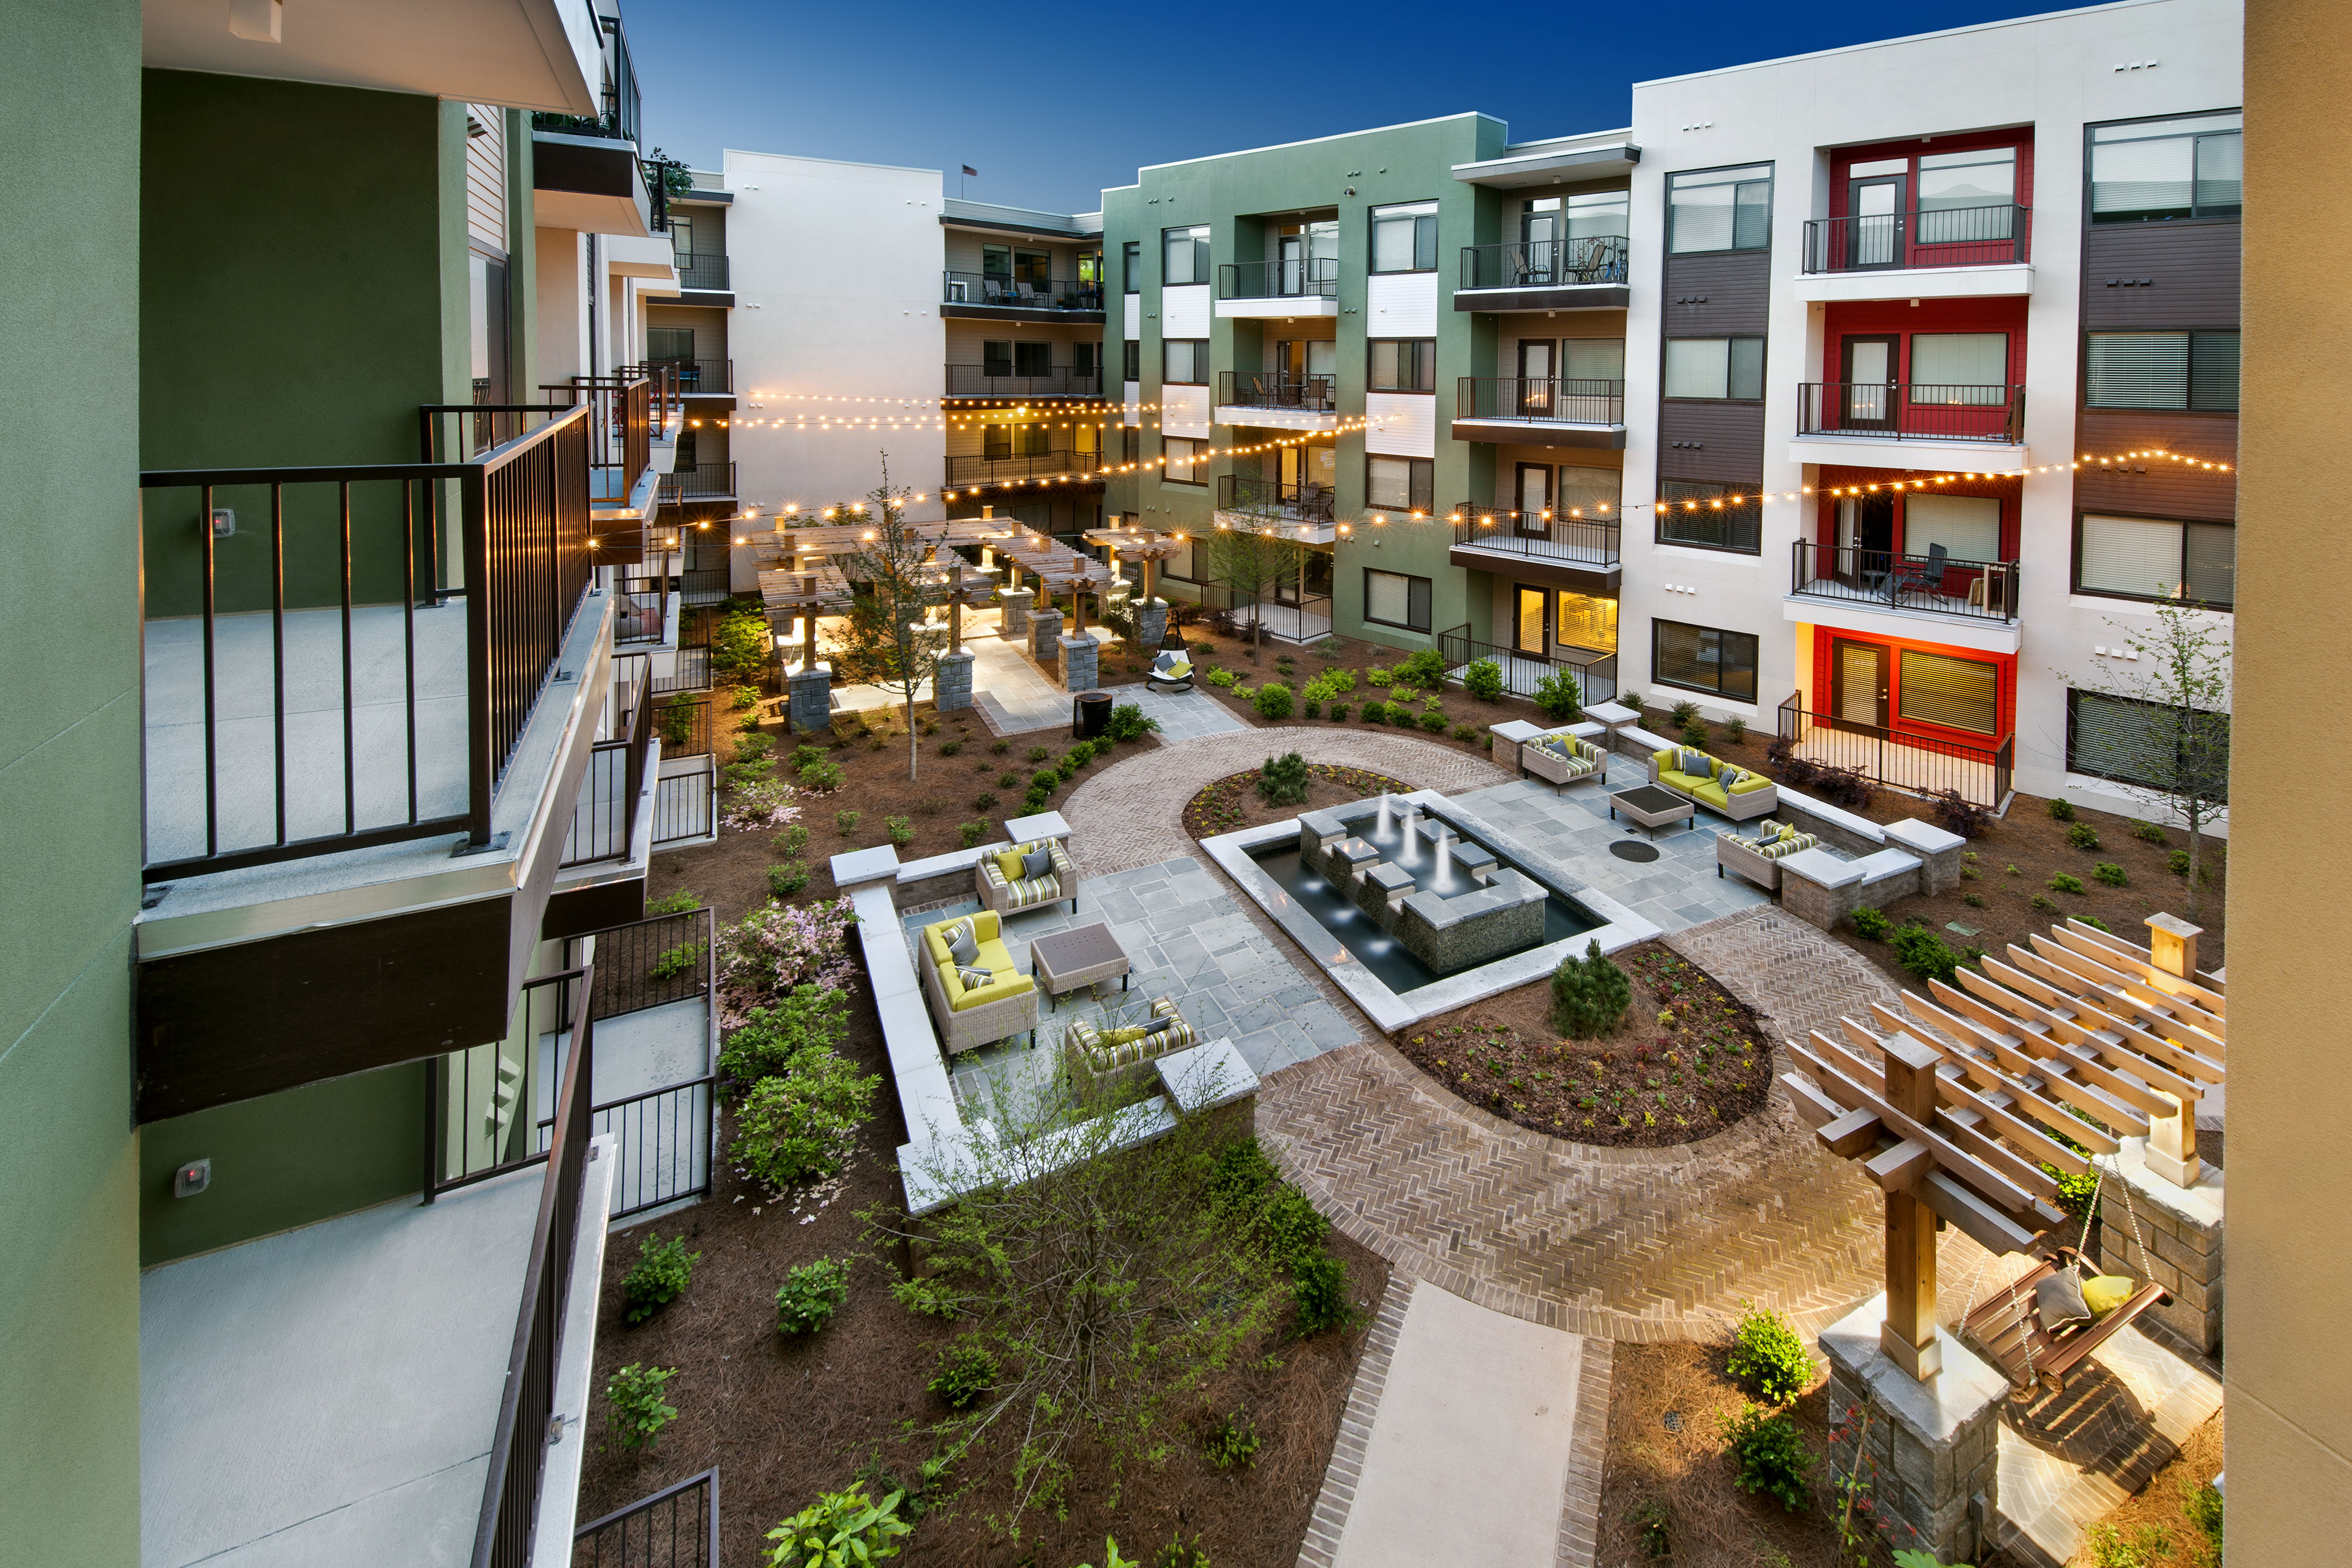 Ecofriendly apartments support a green lifestyle in